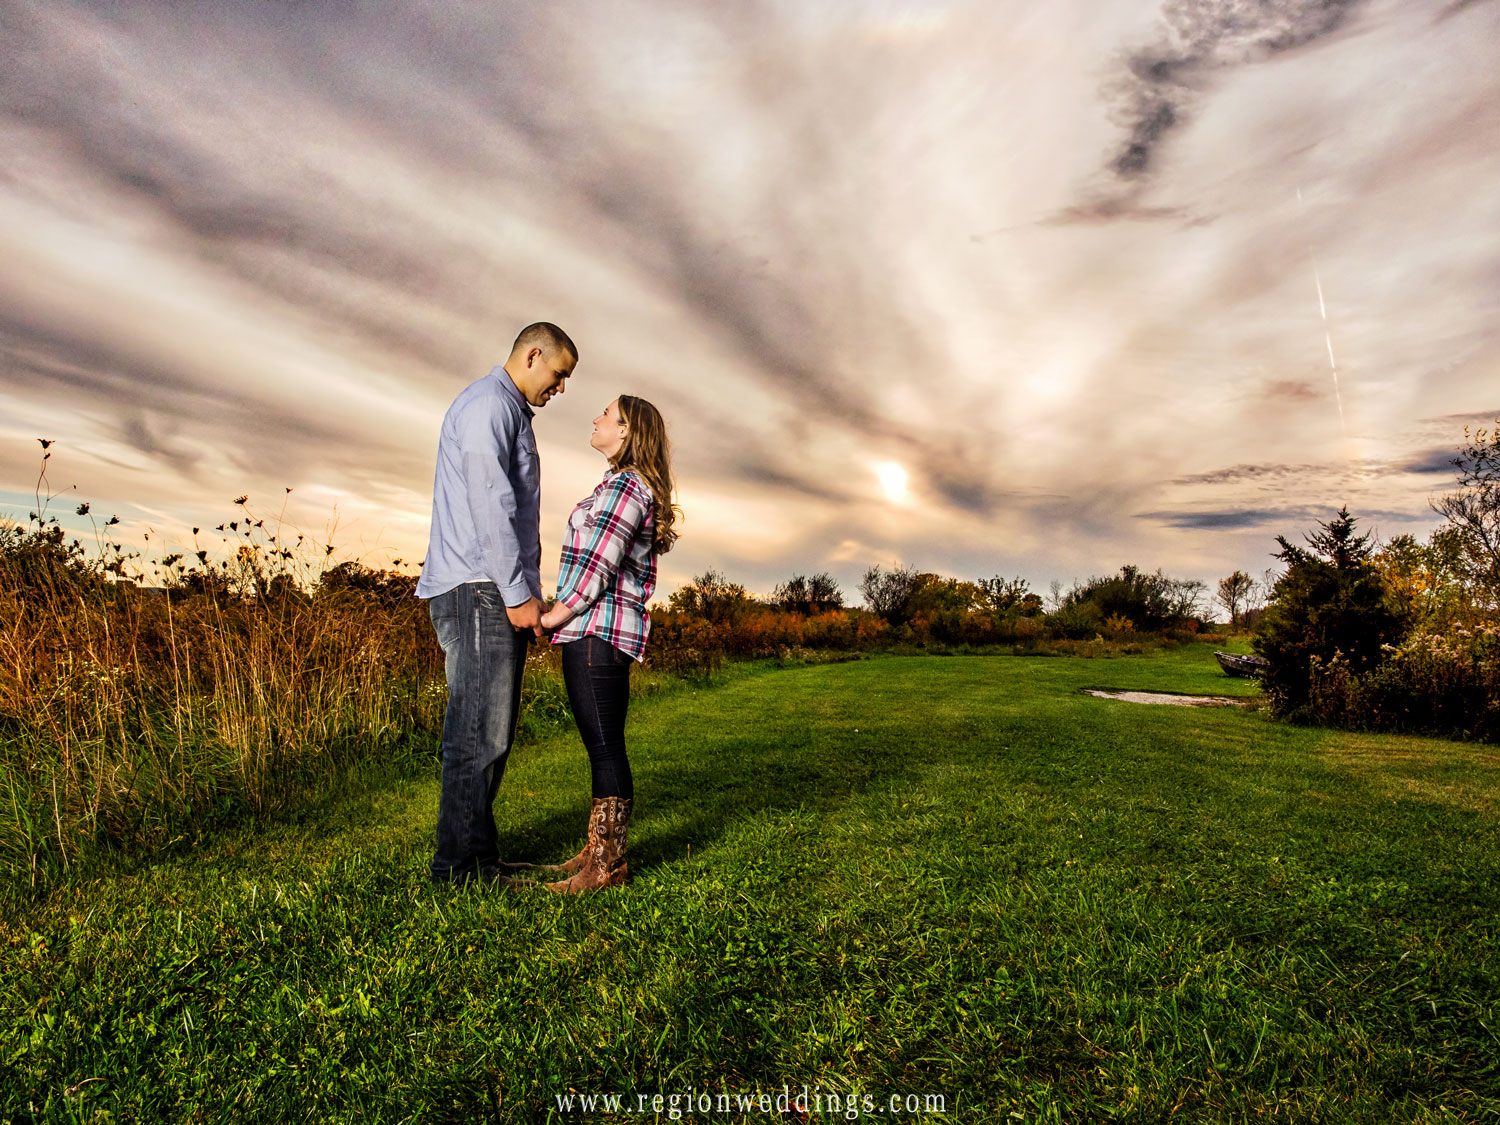 Wicked looking clouds swirl in the skies above in this engagement photo taken on a farm in Lowell, Indiana.